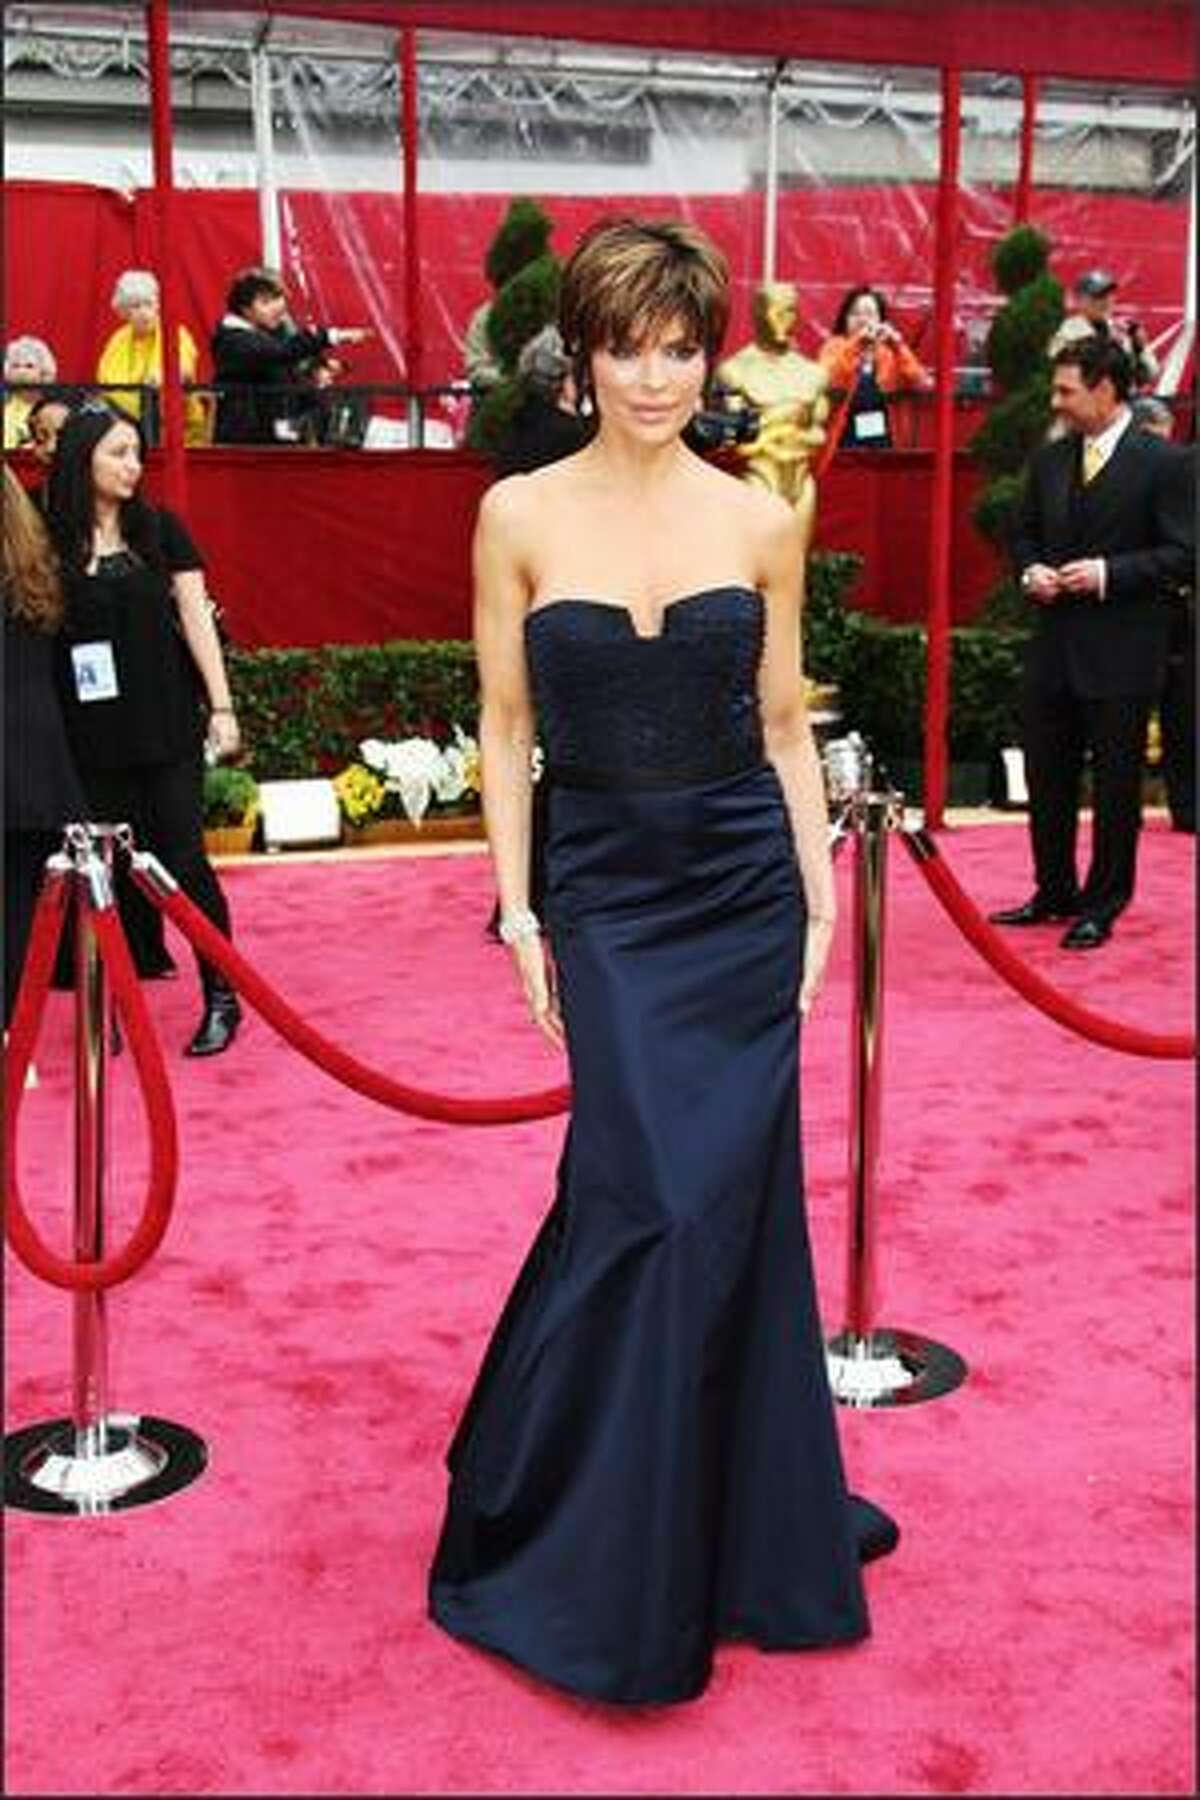 Actress Lisa Rinna arrives for the 80th Annual Academy Awards at the Kodak Theater in Hollywood, California.